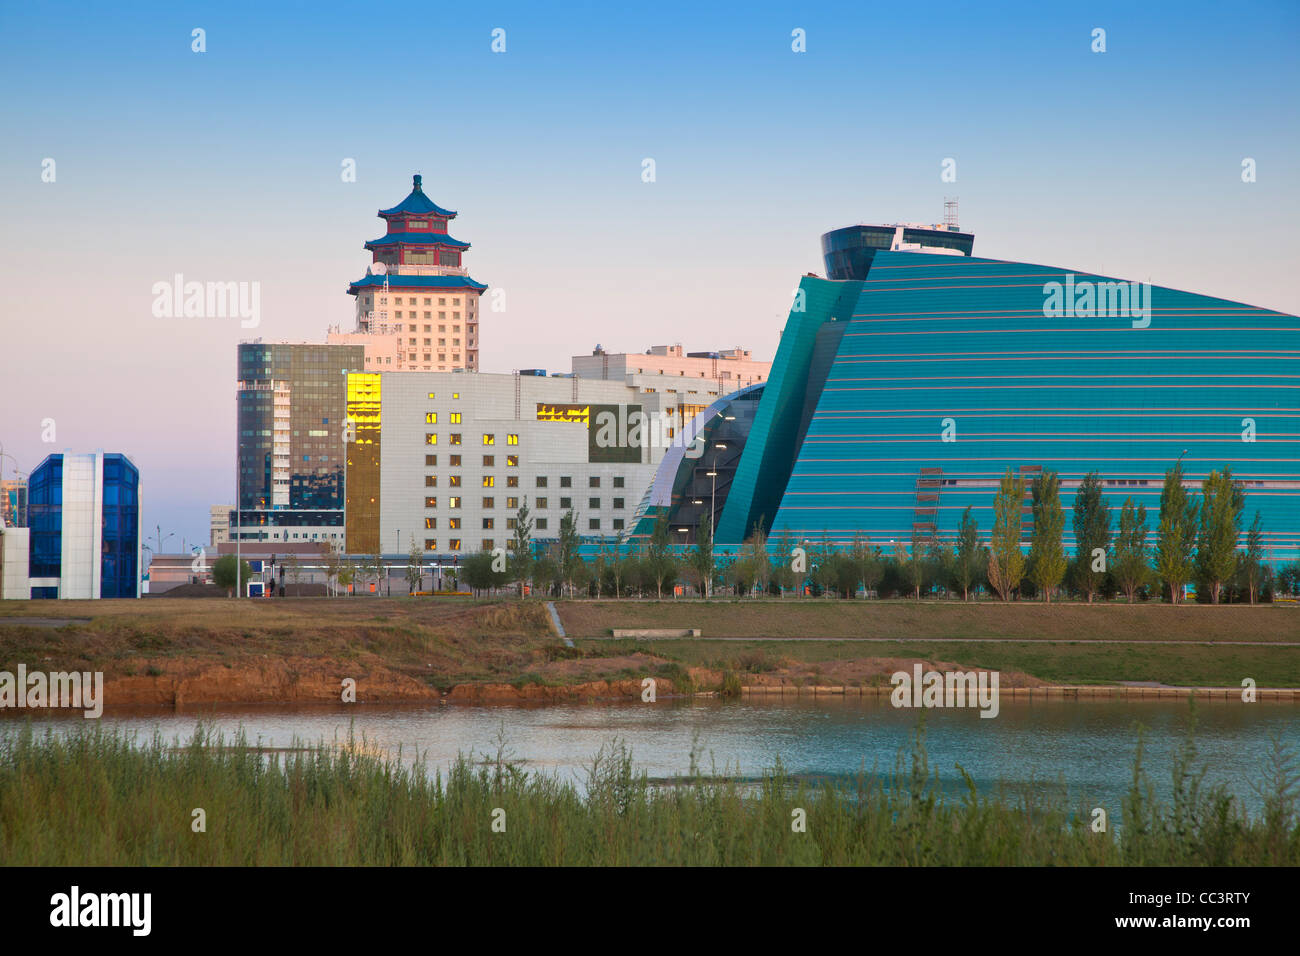 Kazakhstan, Astana, View of city skyline - Stock Image